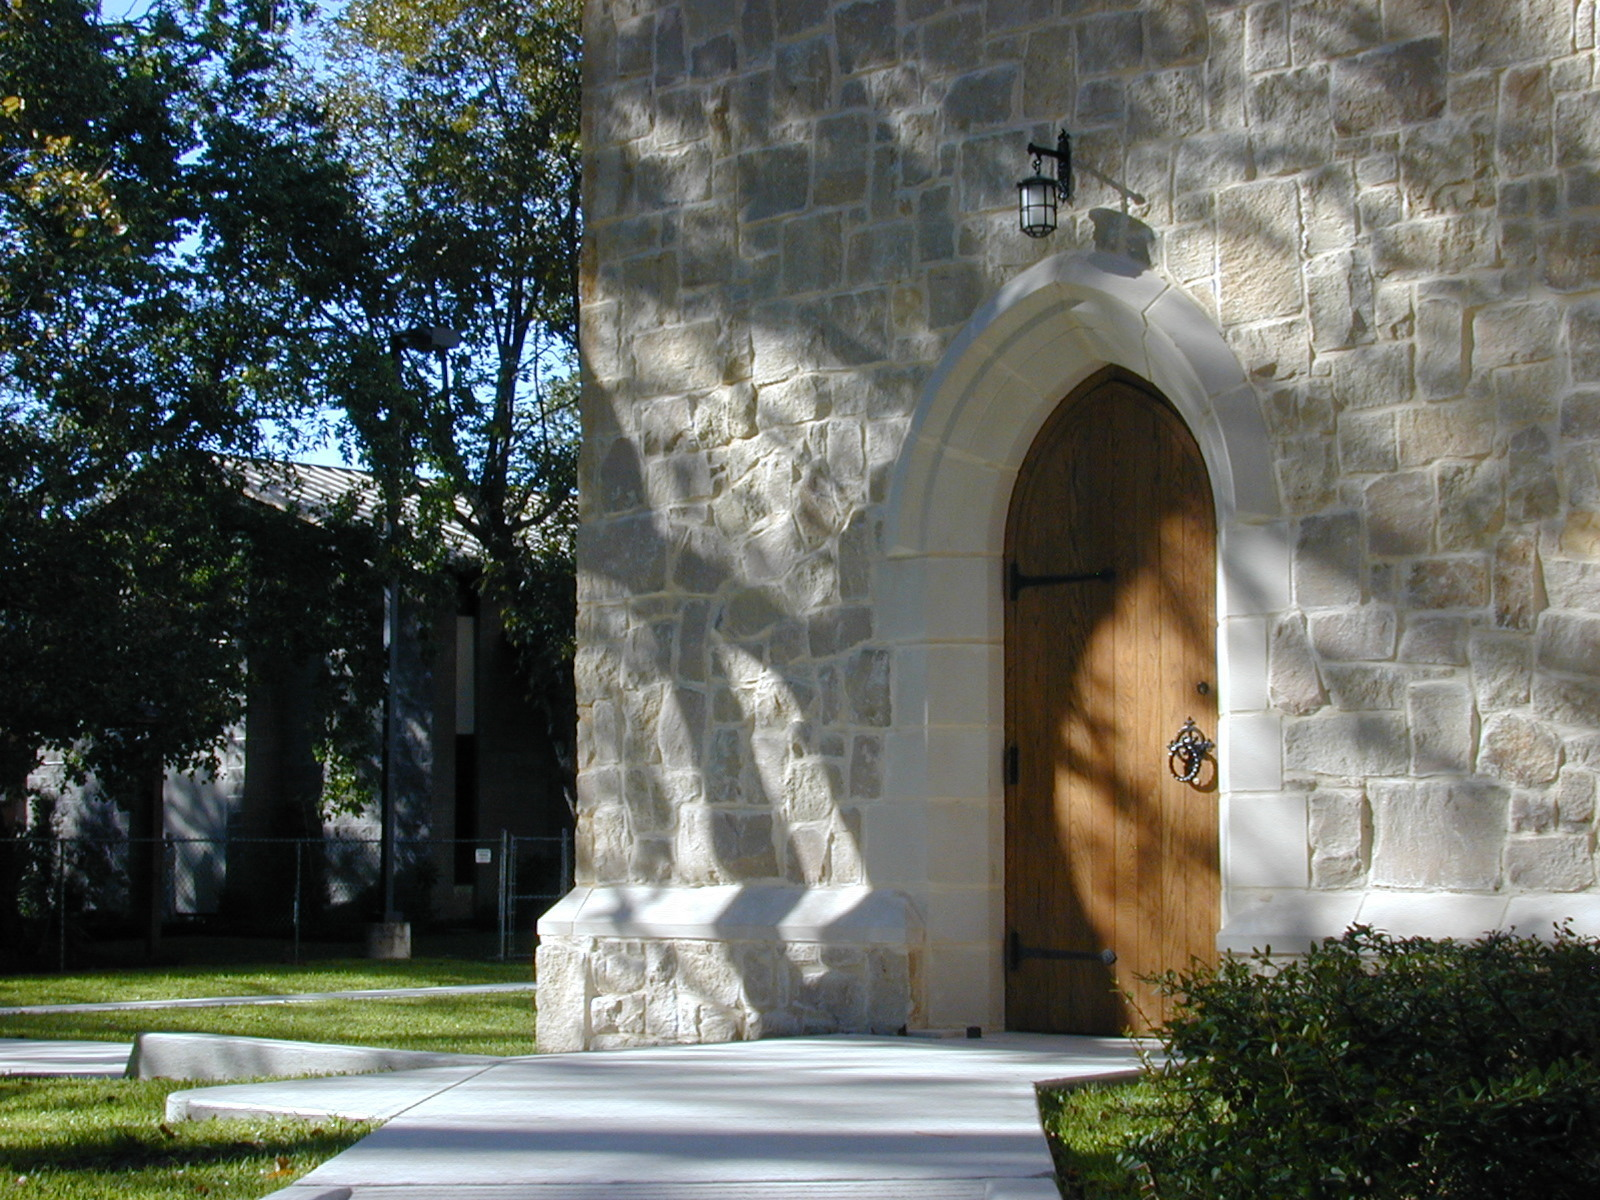 The Sacristy Door